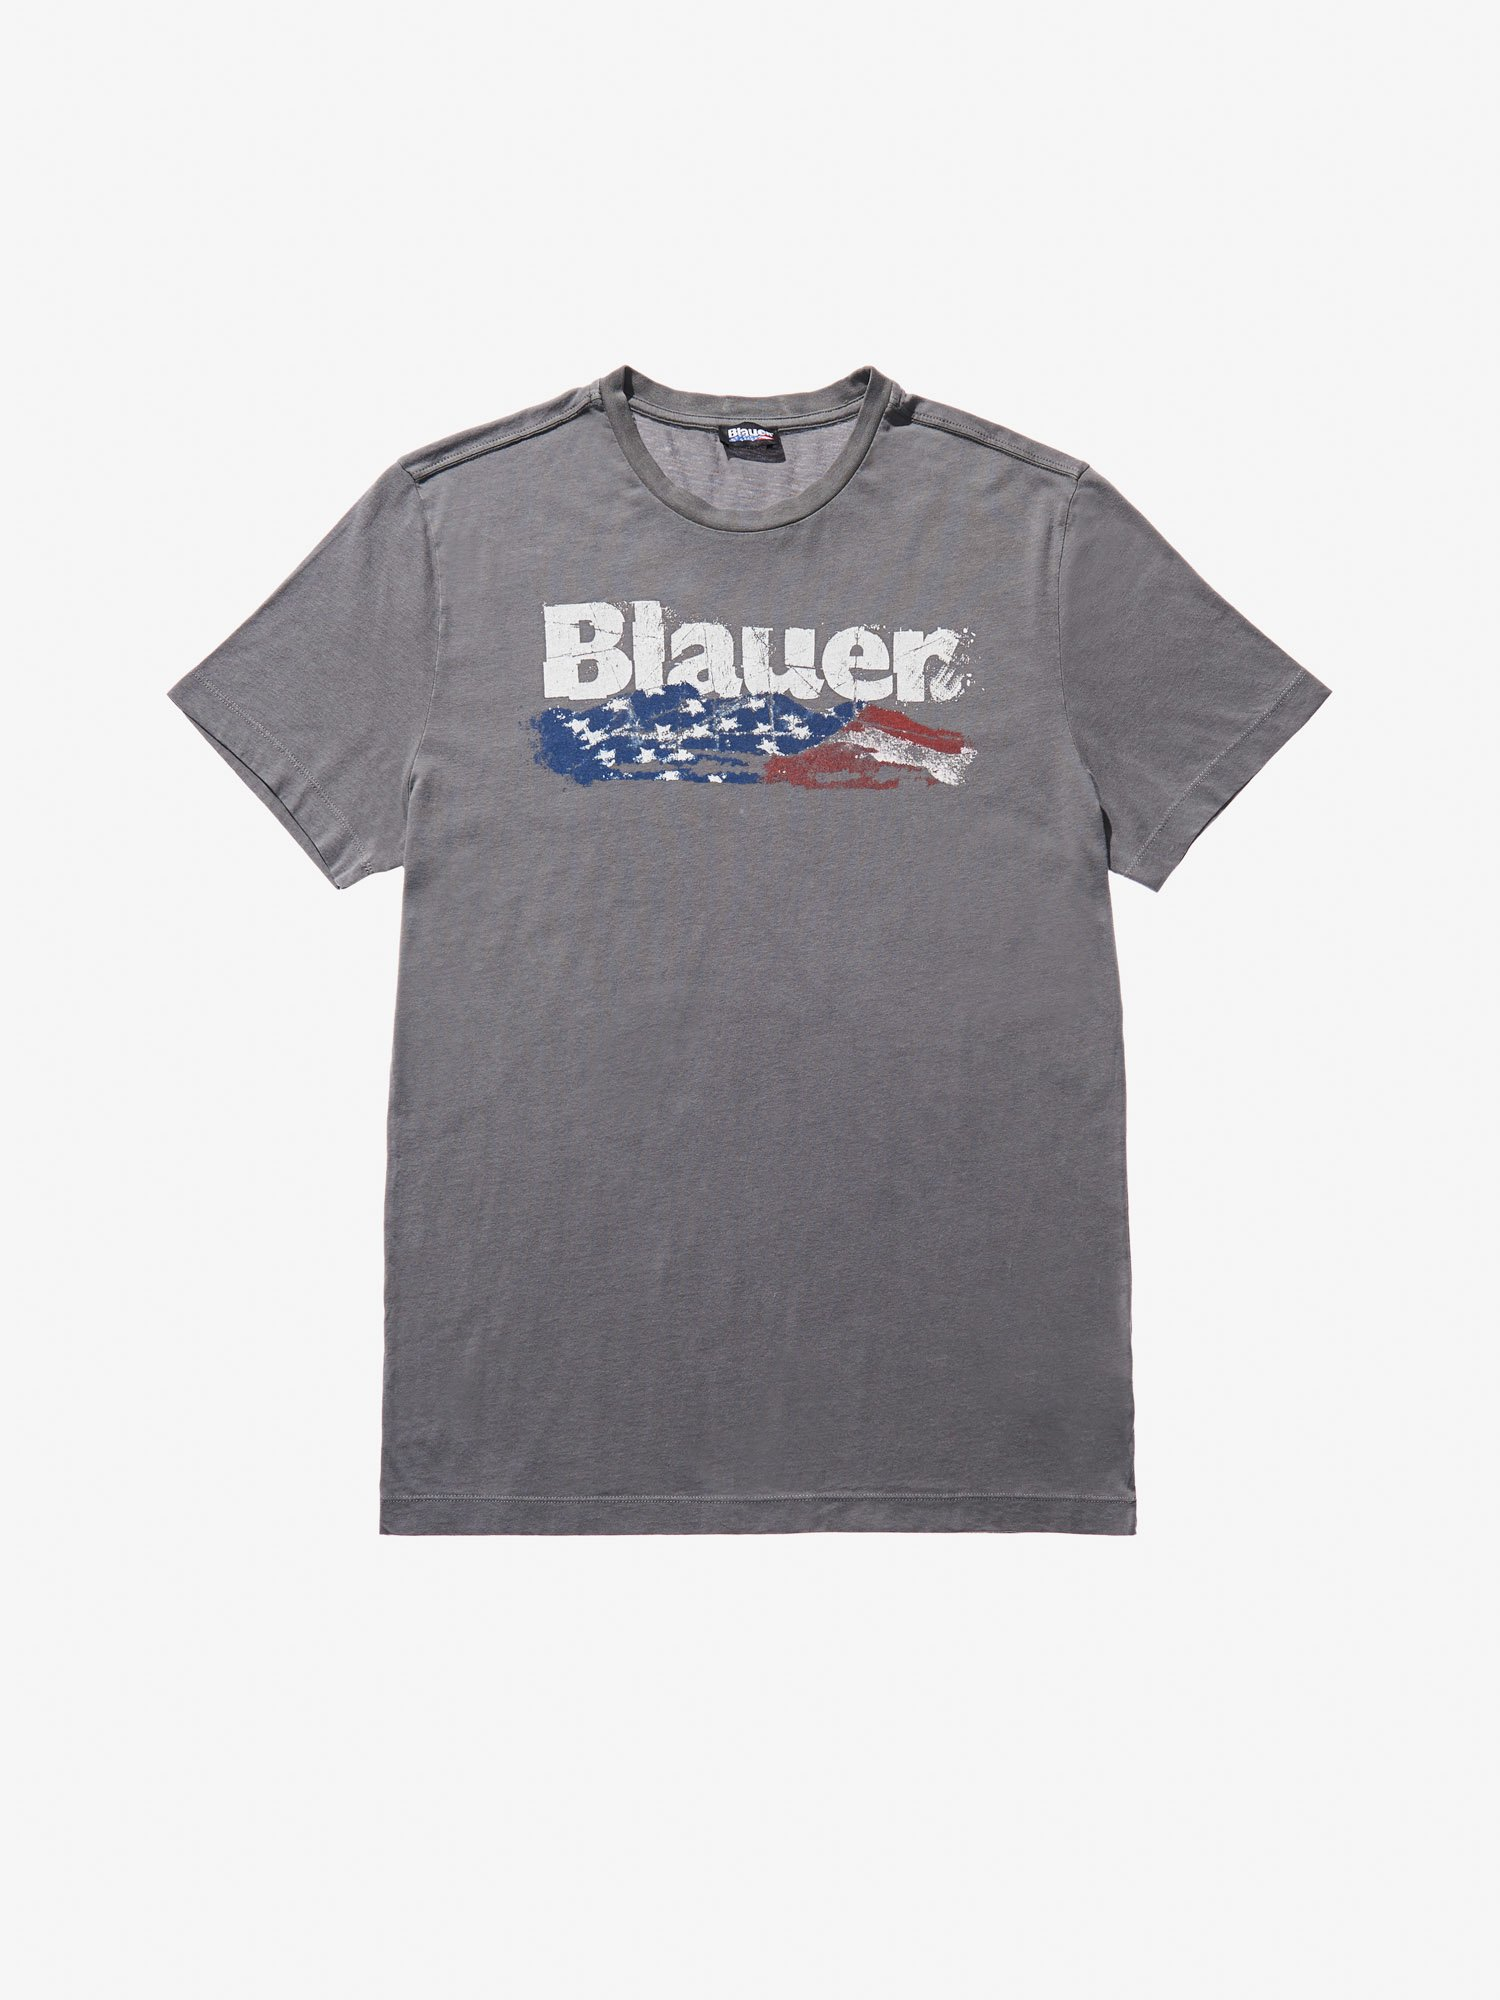 FLAG T-SHIRT - Blauer